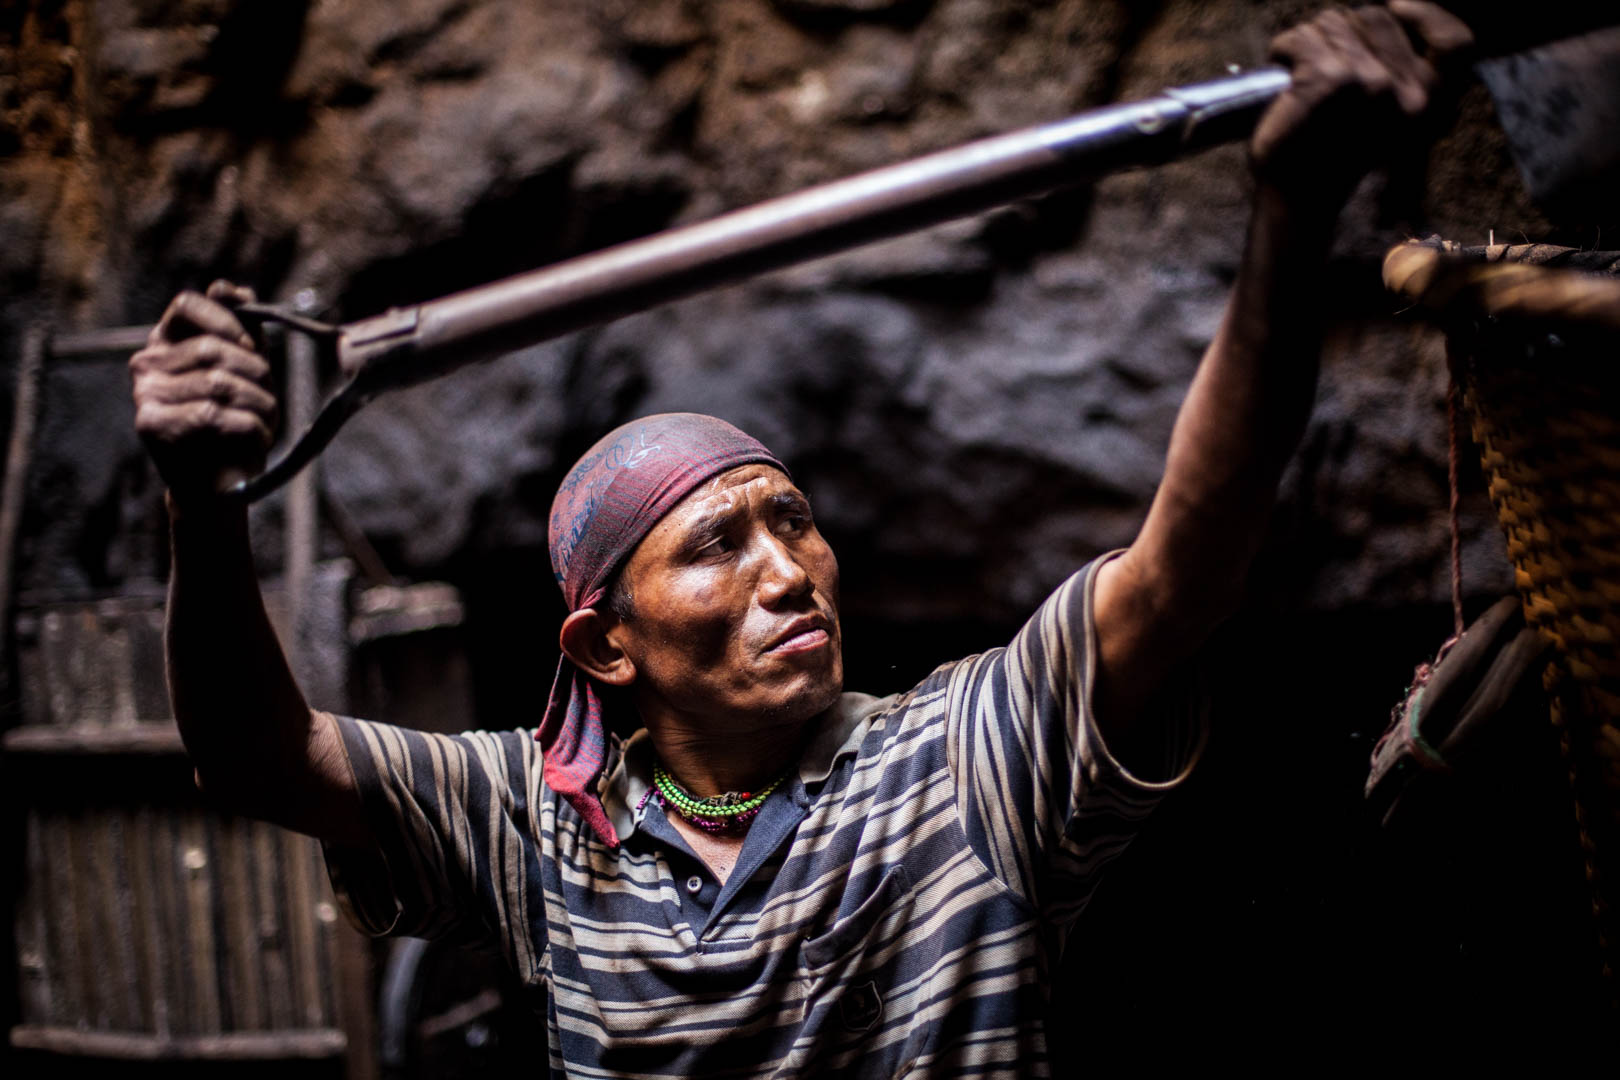 With the work in the underground mines in Meghalaya being one of the hardest jobs in India, even many Indians refuse to do this kind of work. Here, a worker from Nepal is shovelling coal.